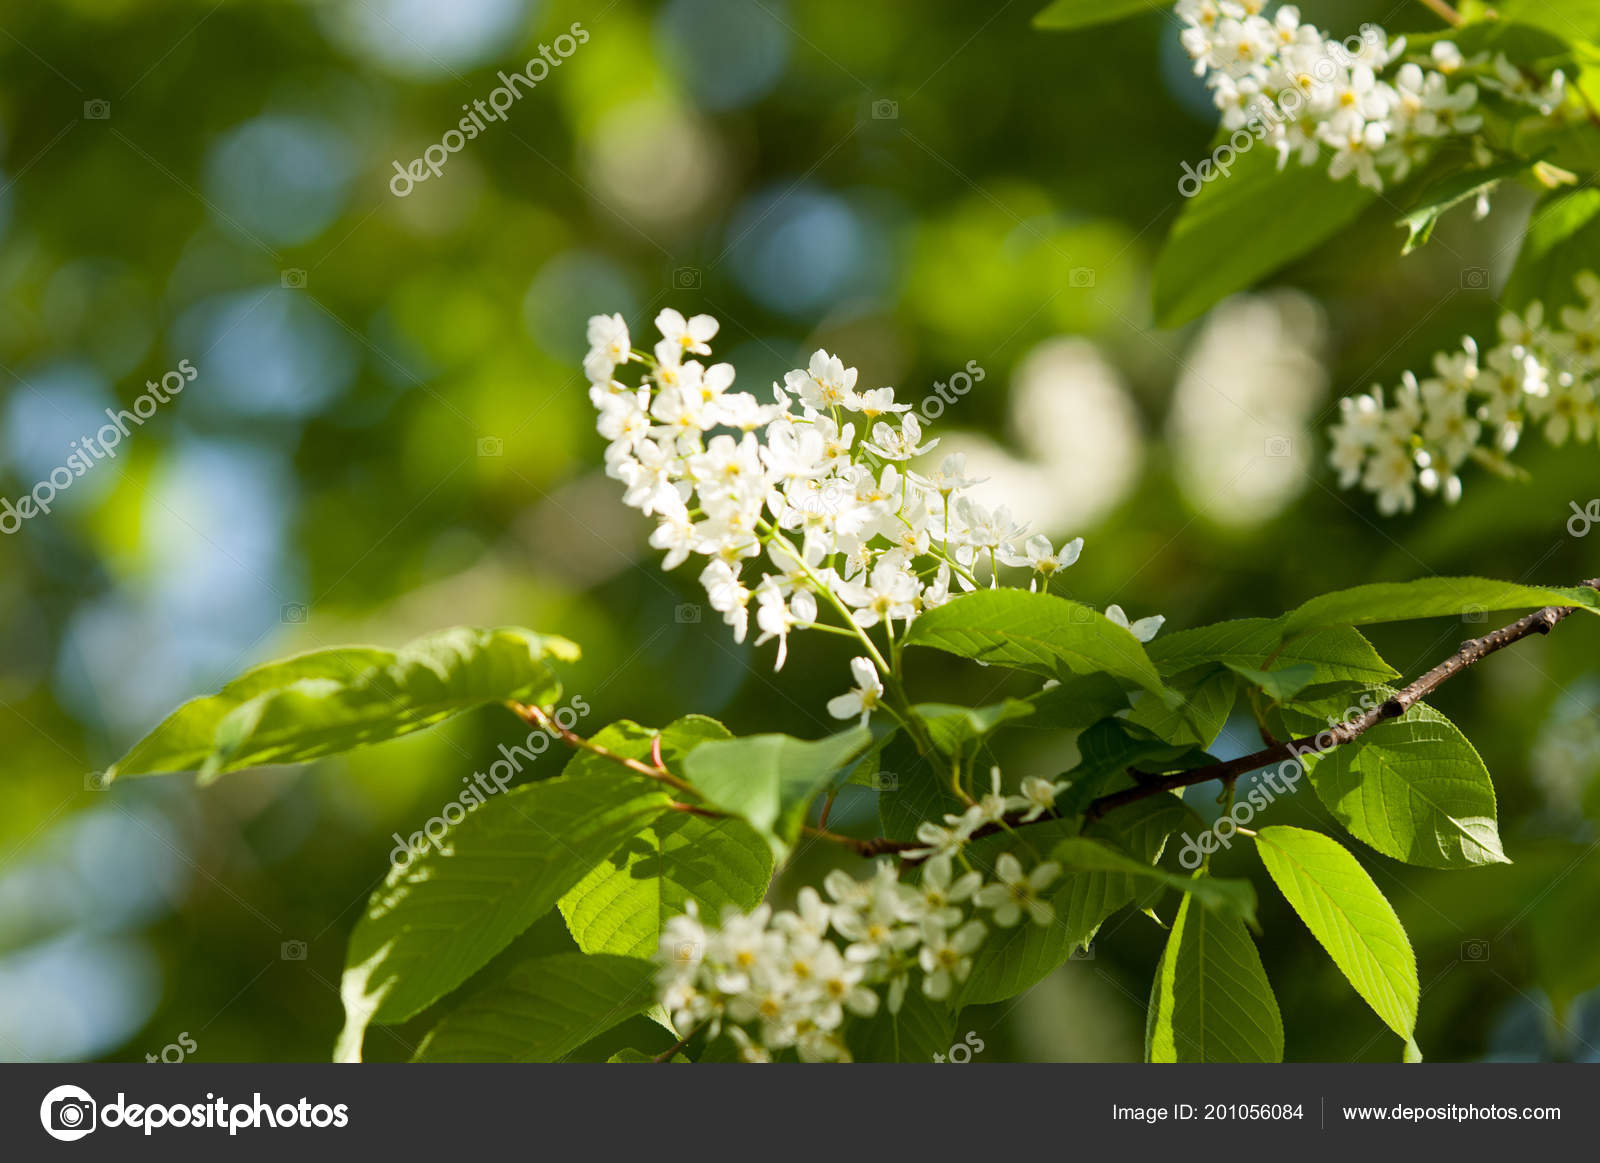 Spring Flowers Bird Cherry Tree White Fragrant Flowers Collected